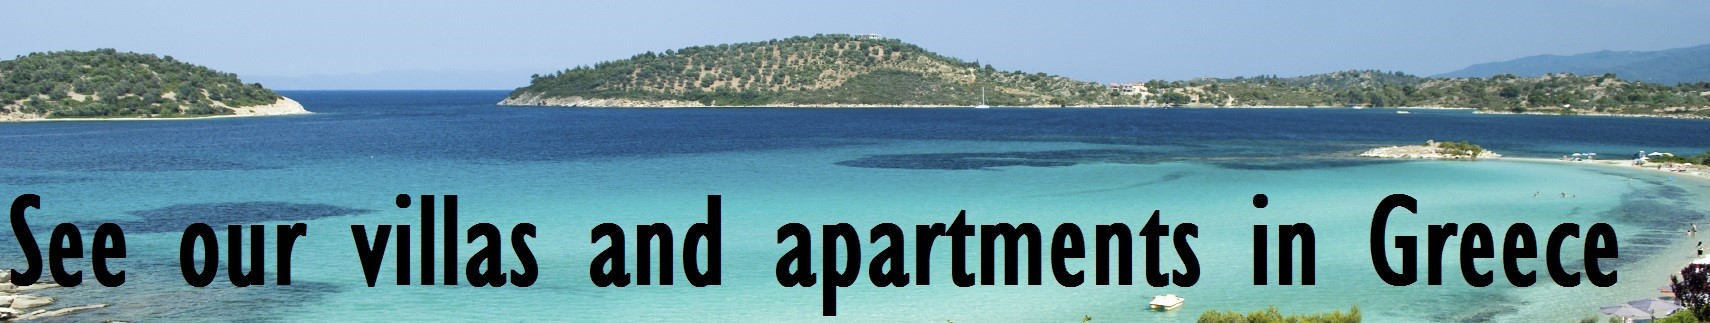 villas and apartments in Greece